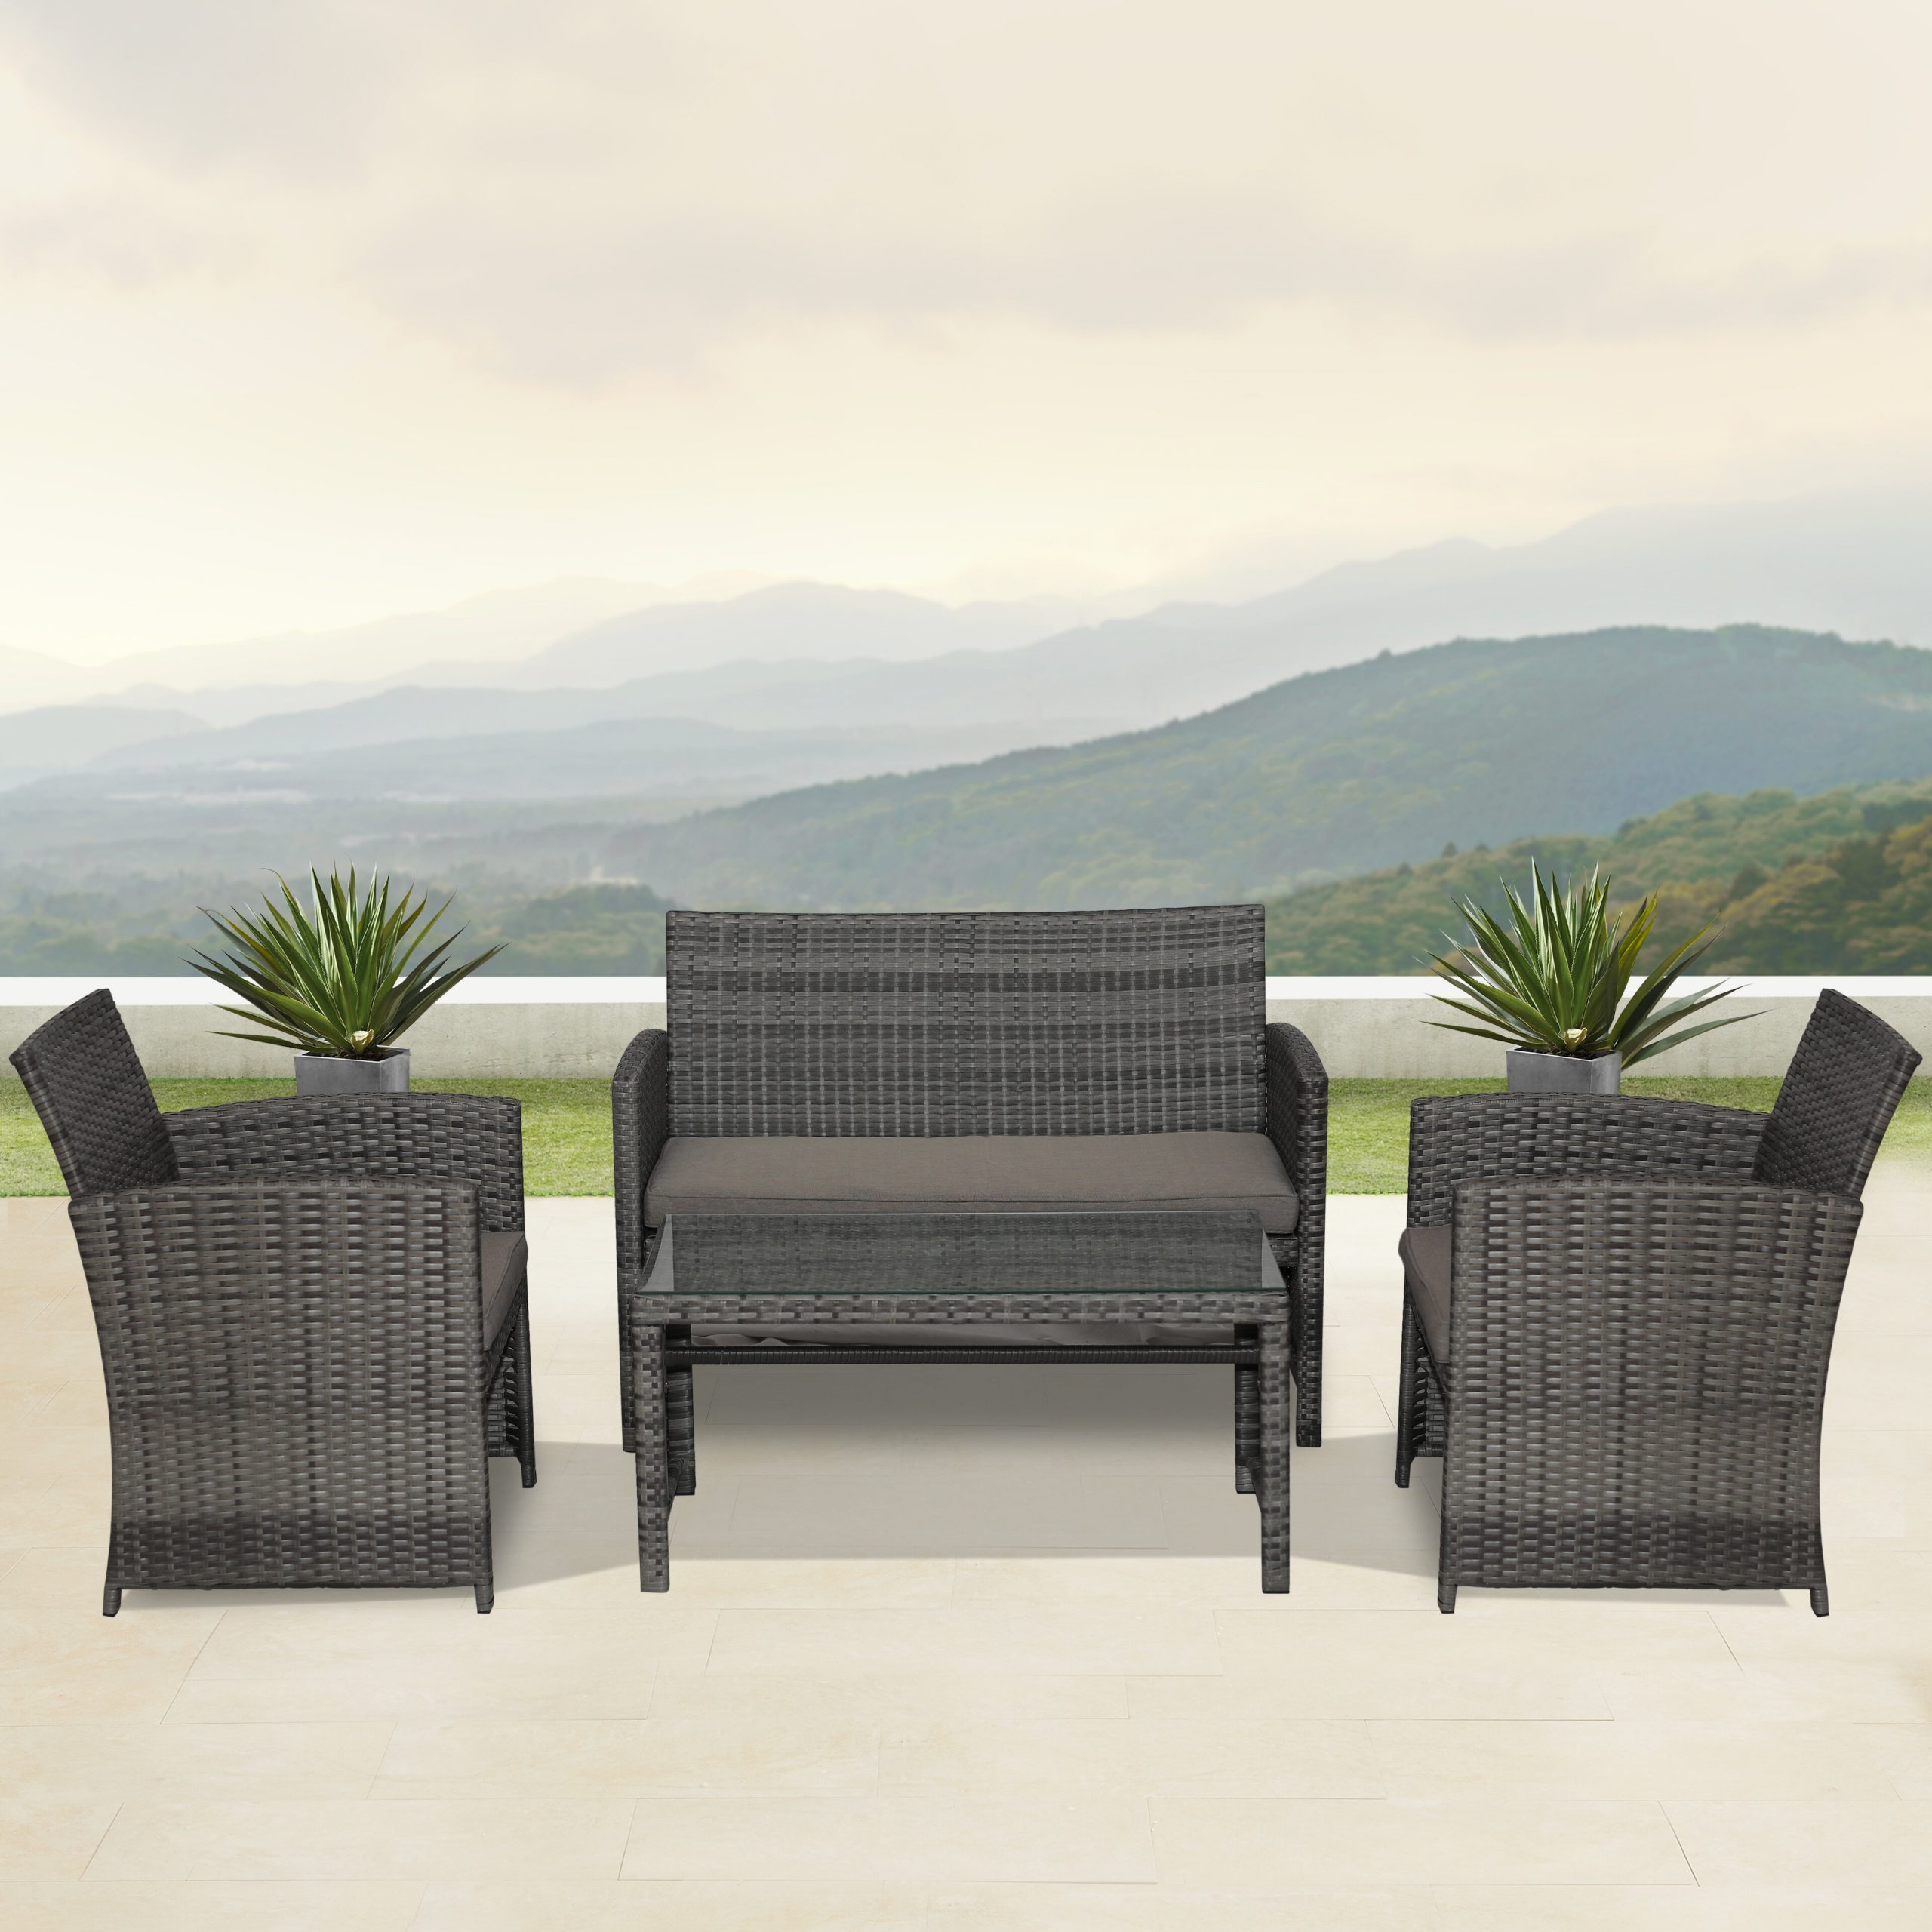 Lublin 4 Piece Rattan Sofa Seating Group With Cushions With Lublin Wicker Tete A Tete Benches (View 16 of 25)